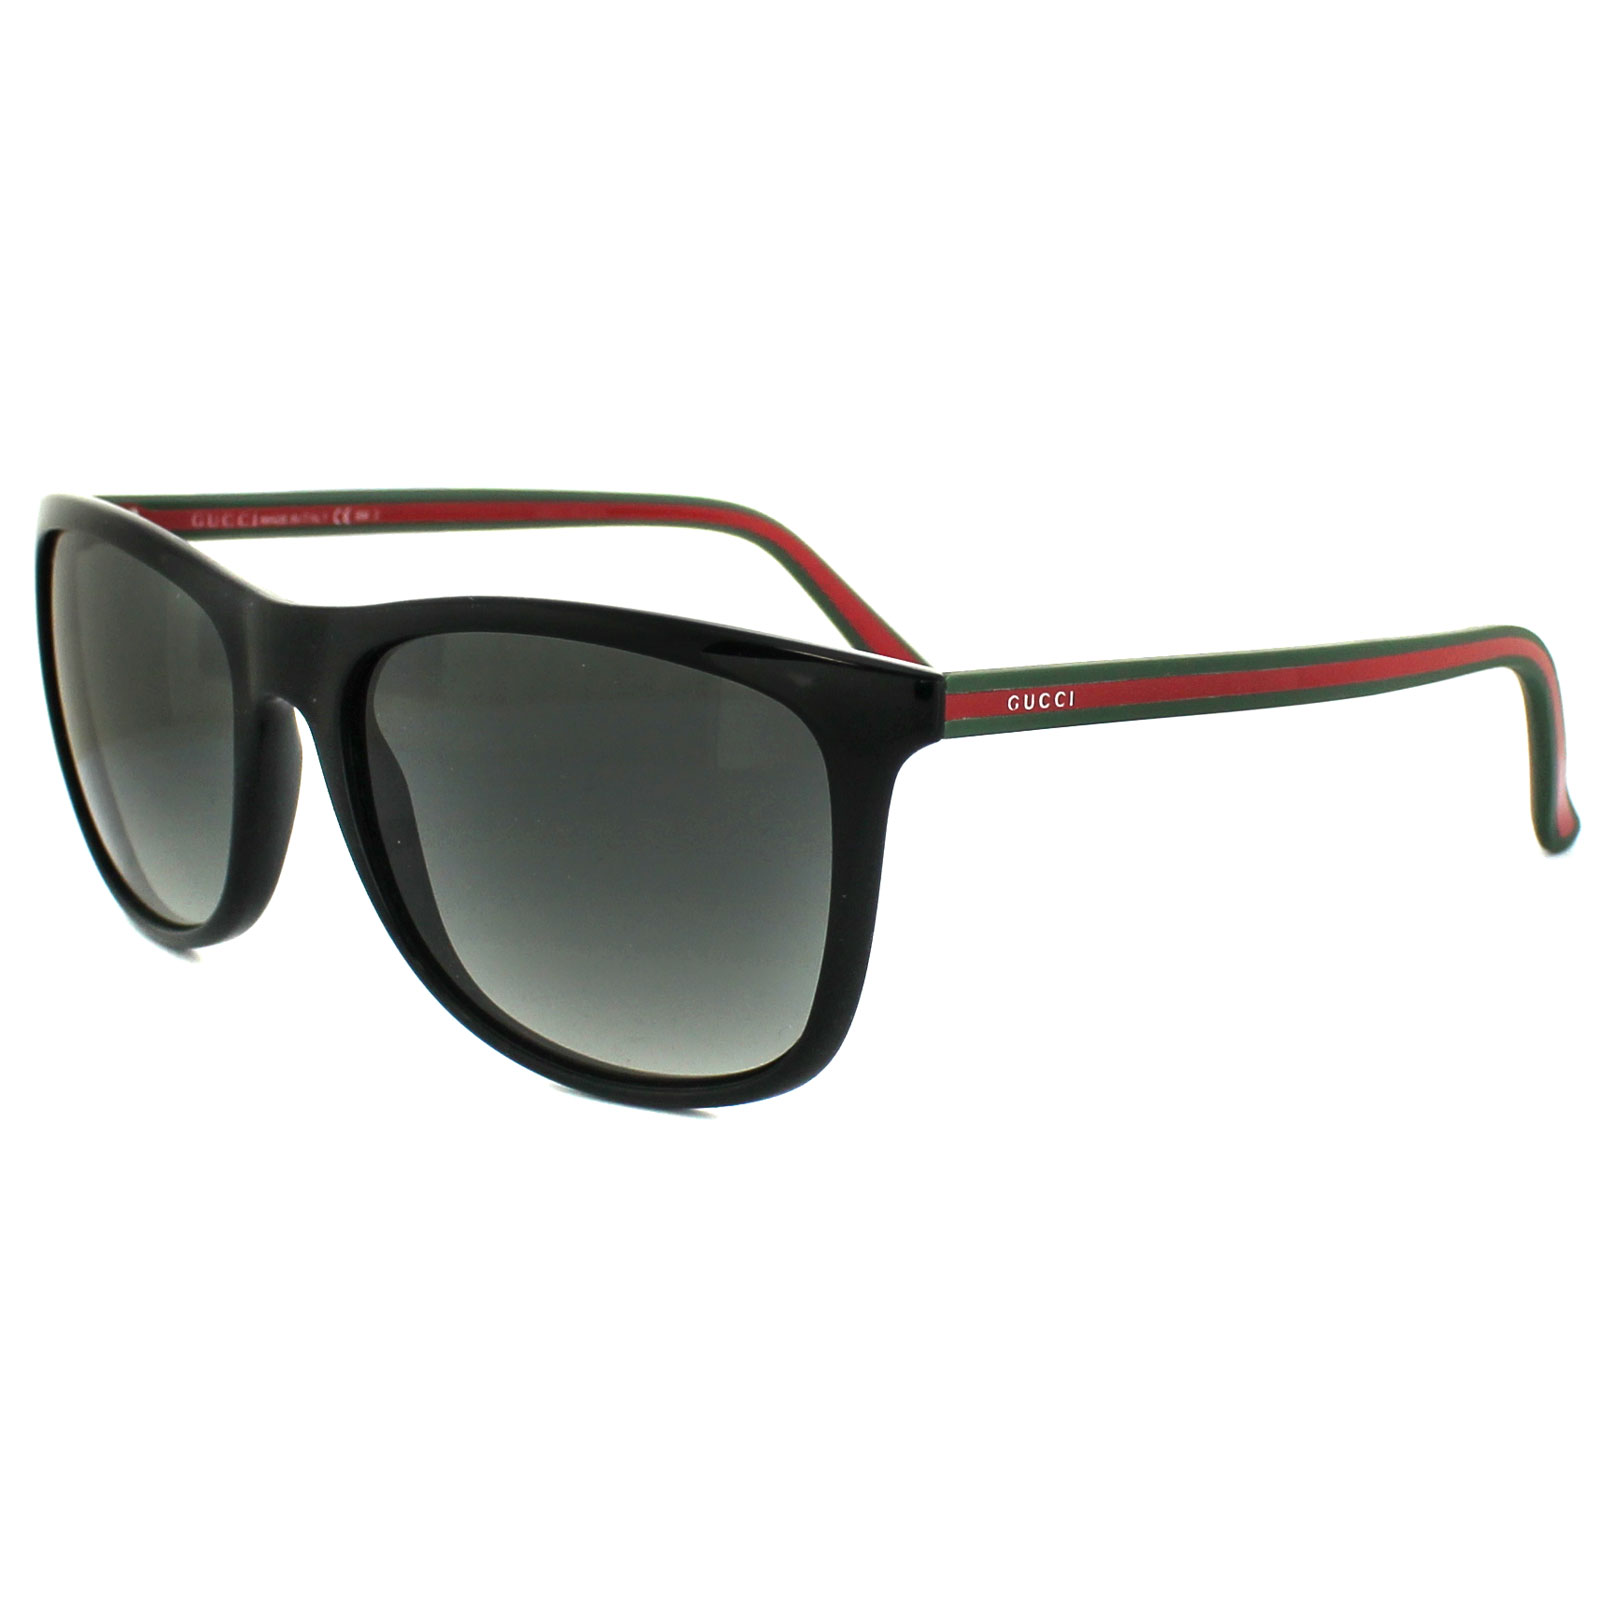 Gucci Sunglasses Green  gucci sunglasses 1055 51n vk black green red grey grant